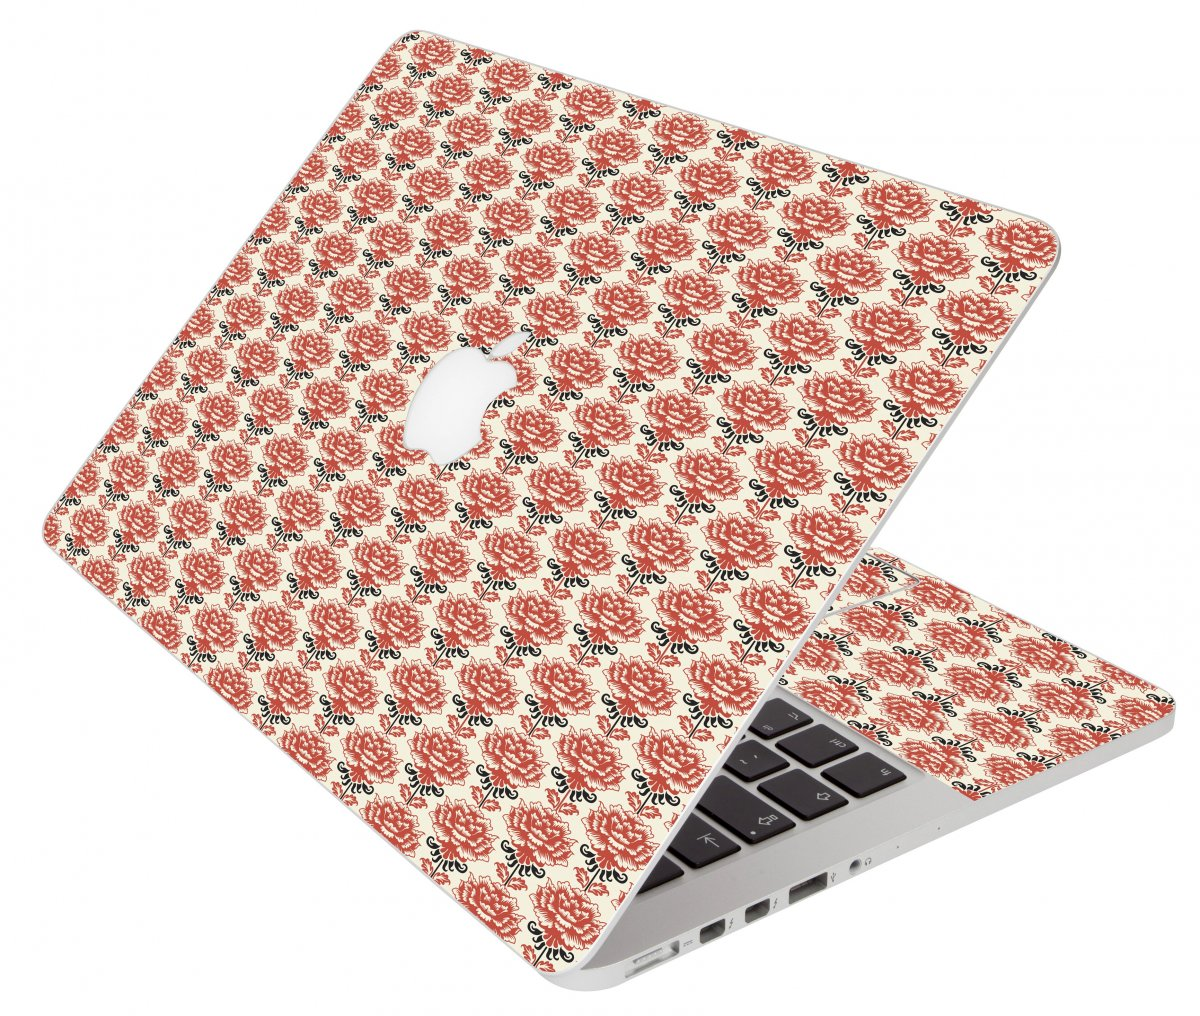 Flower Versailles Apple Macbook Air 11 A1370 Laptop Skin